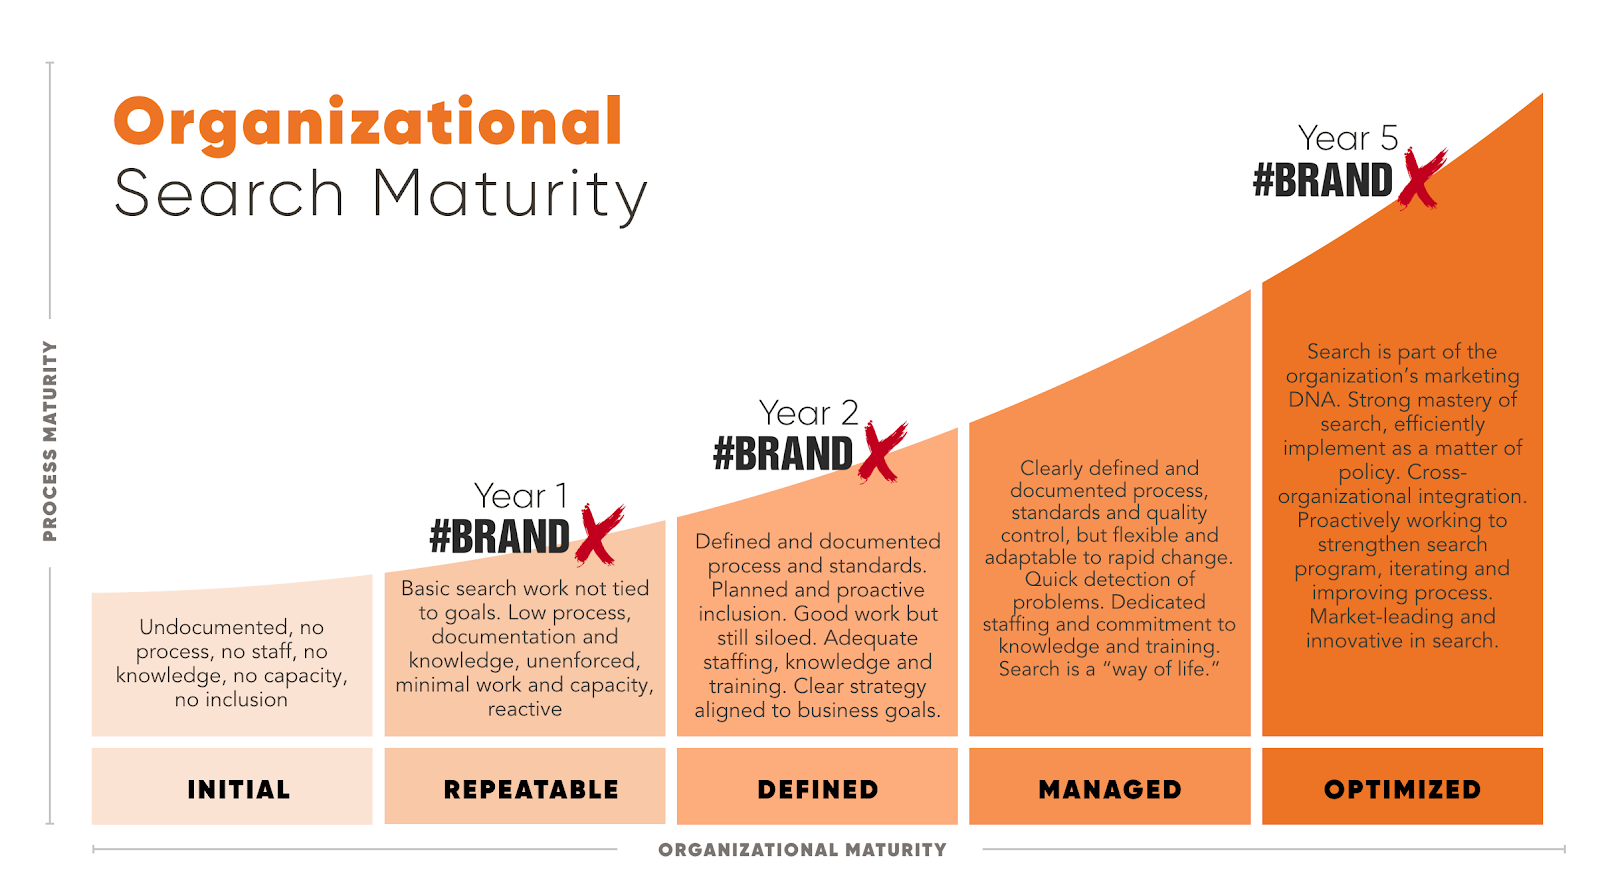 Organizational Search Maturity